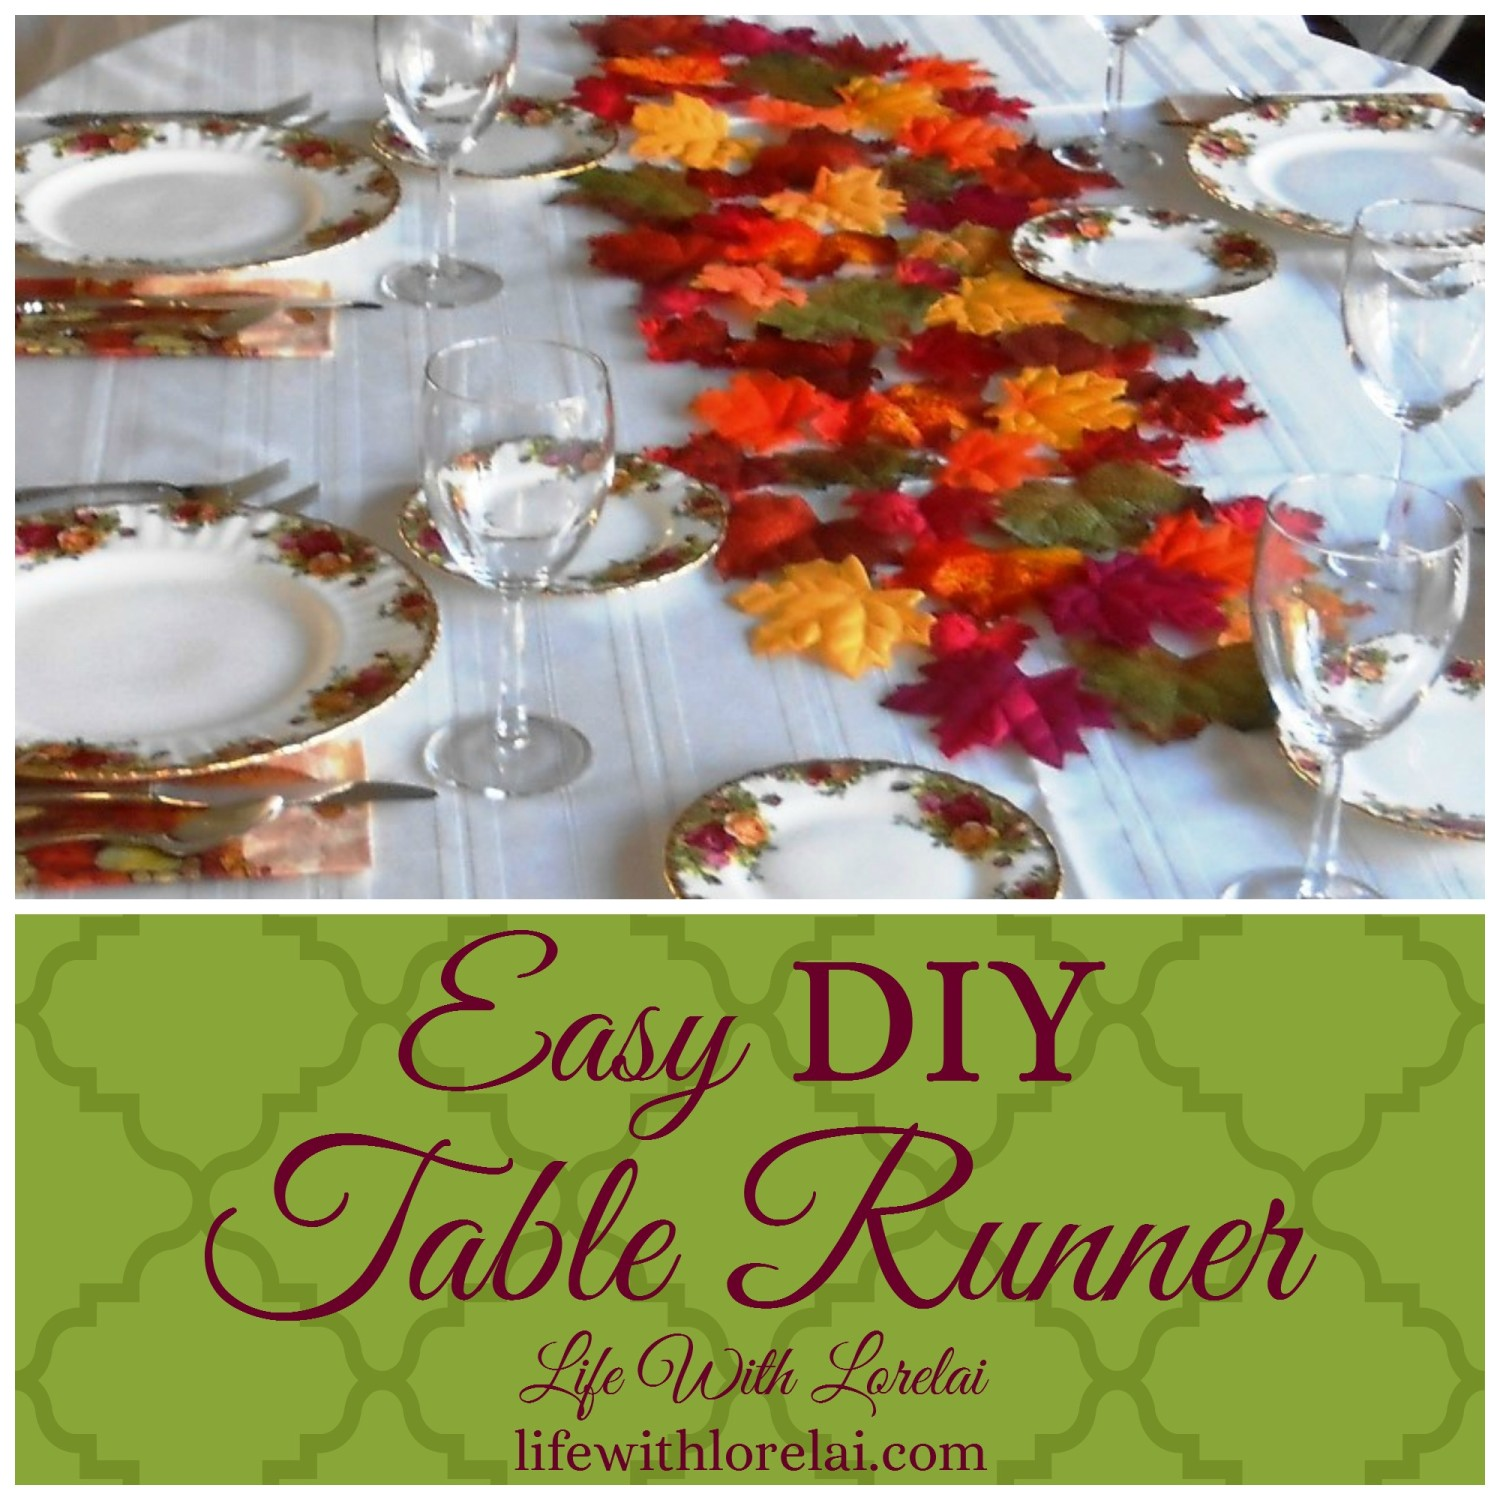 Create a unique table runner to fit any party theme with this easy DIY project.